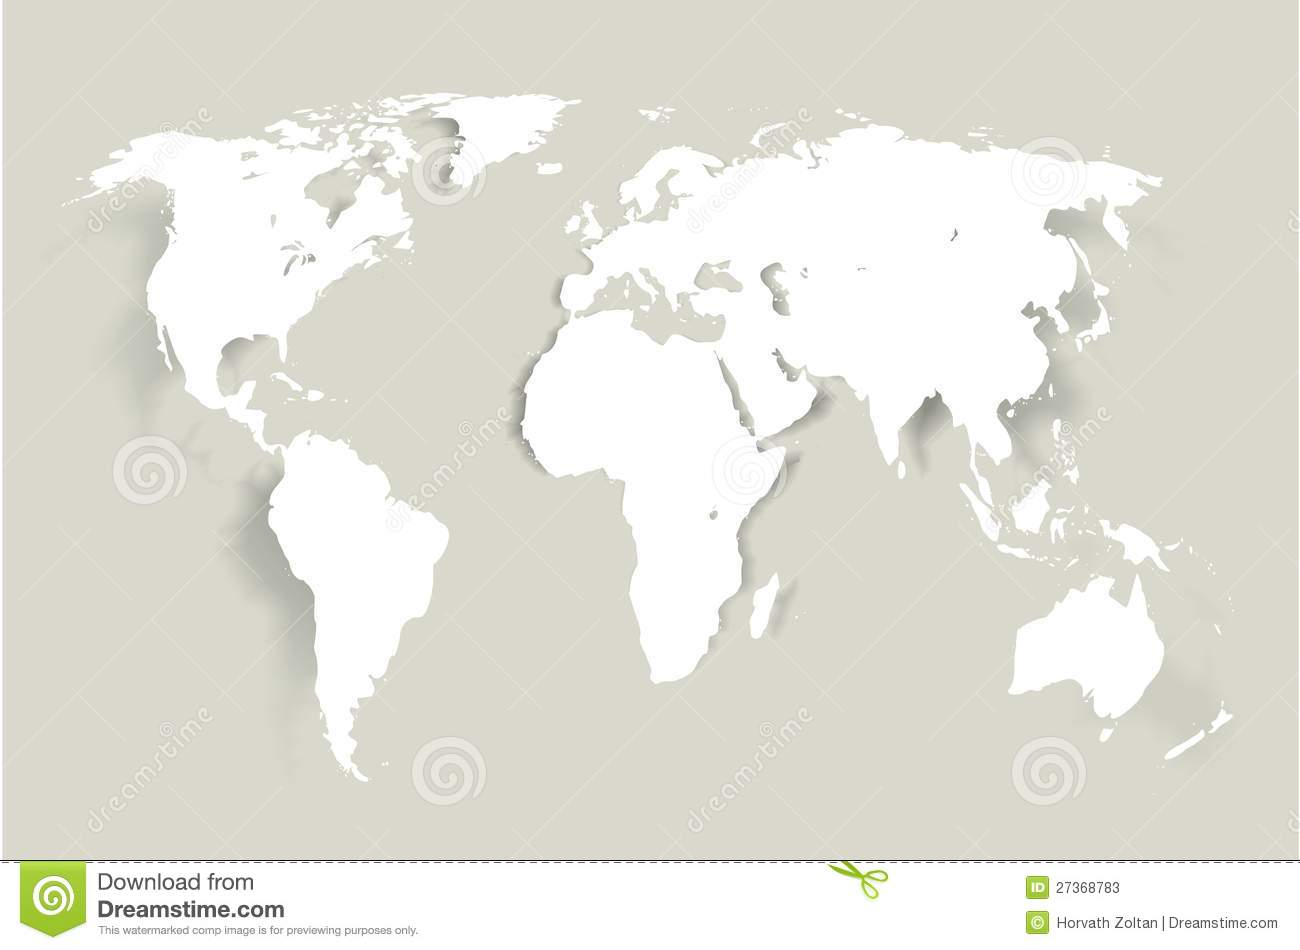 Vector world map stock vector image of digital australia 27368783 vector world map gumiabroncs Images